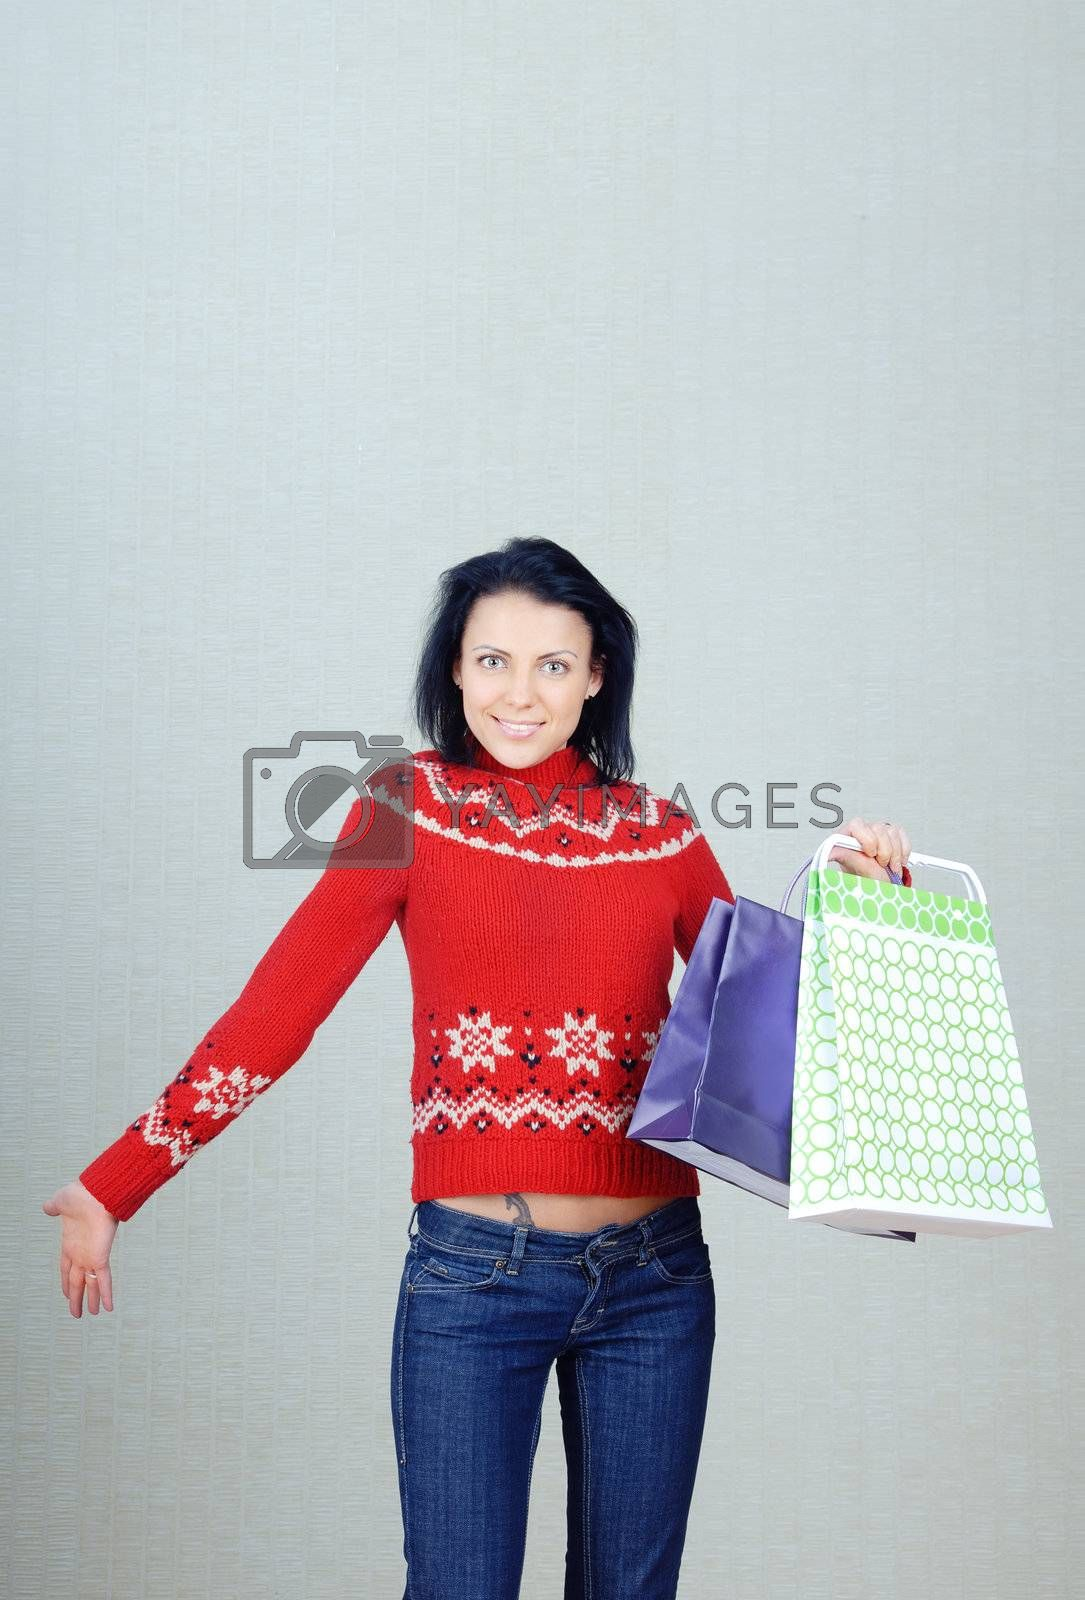 Photo of happy lady with shopping packages and gifts